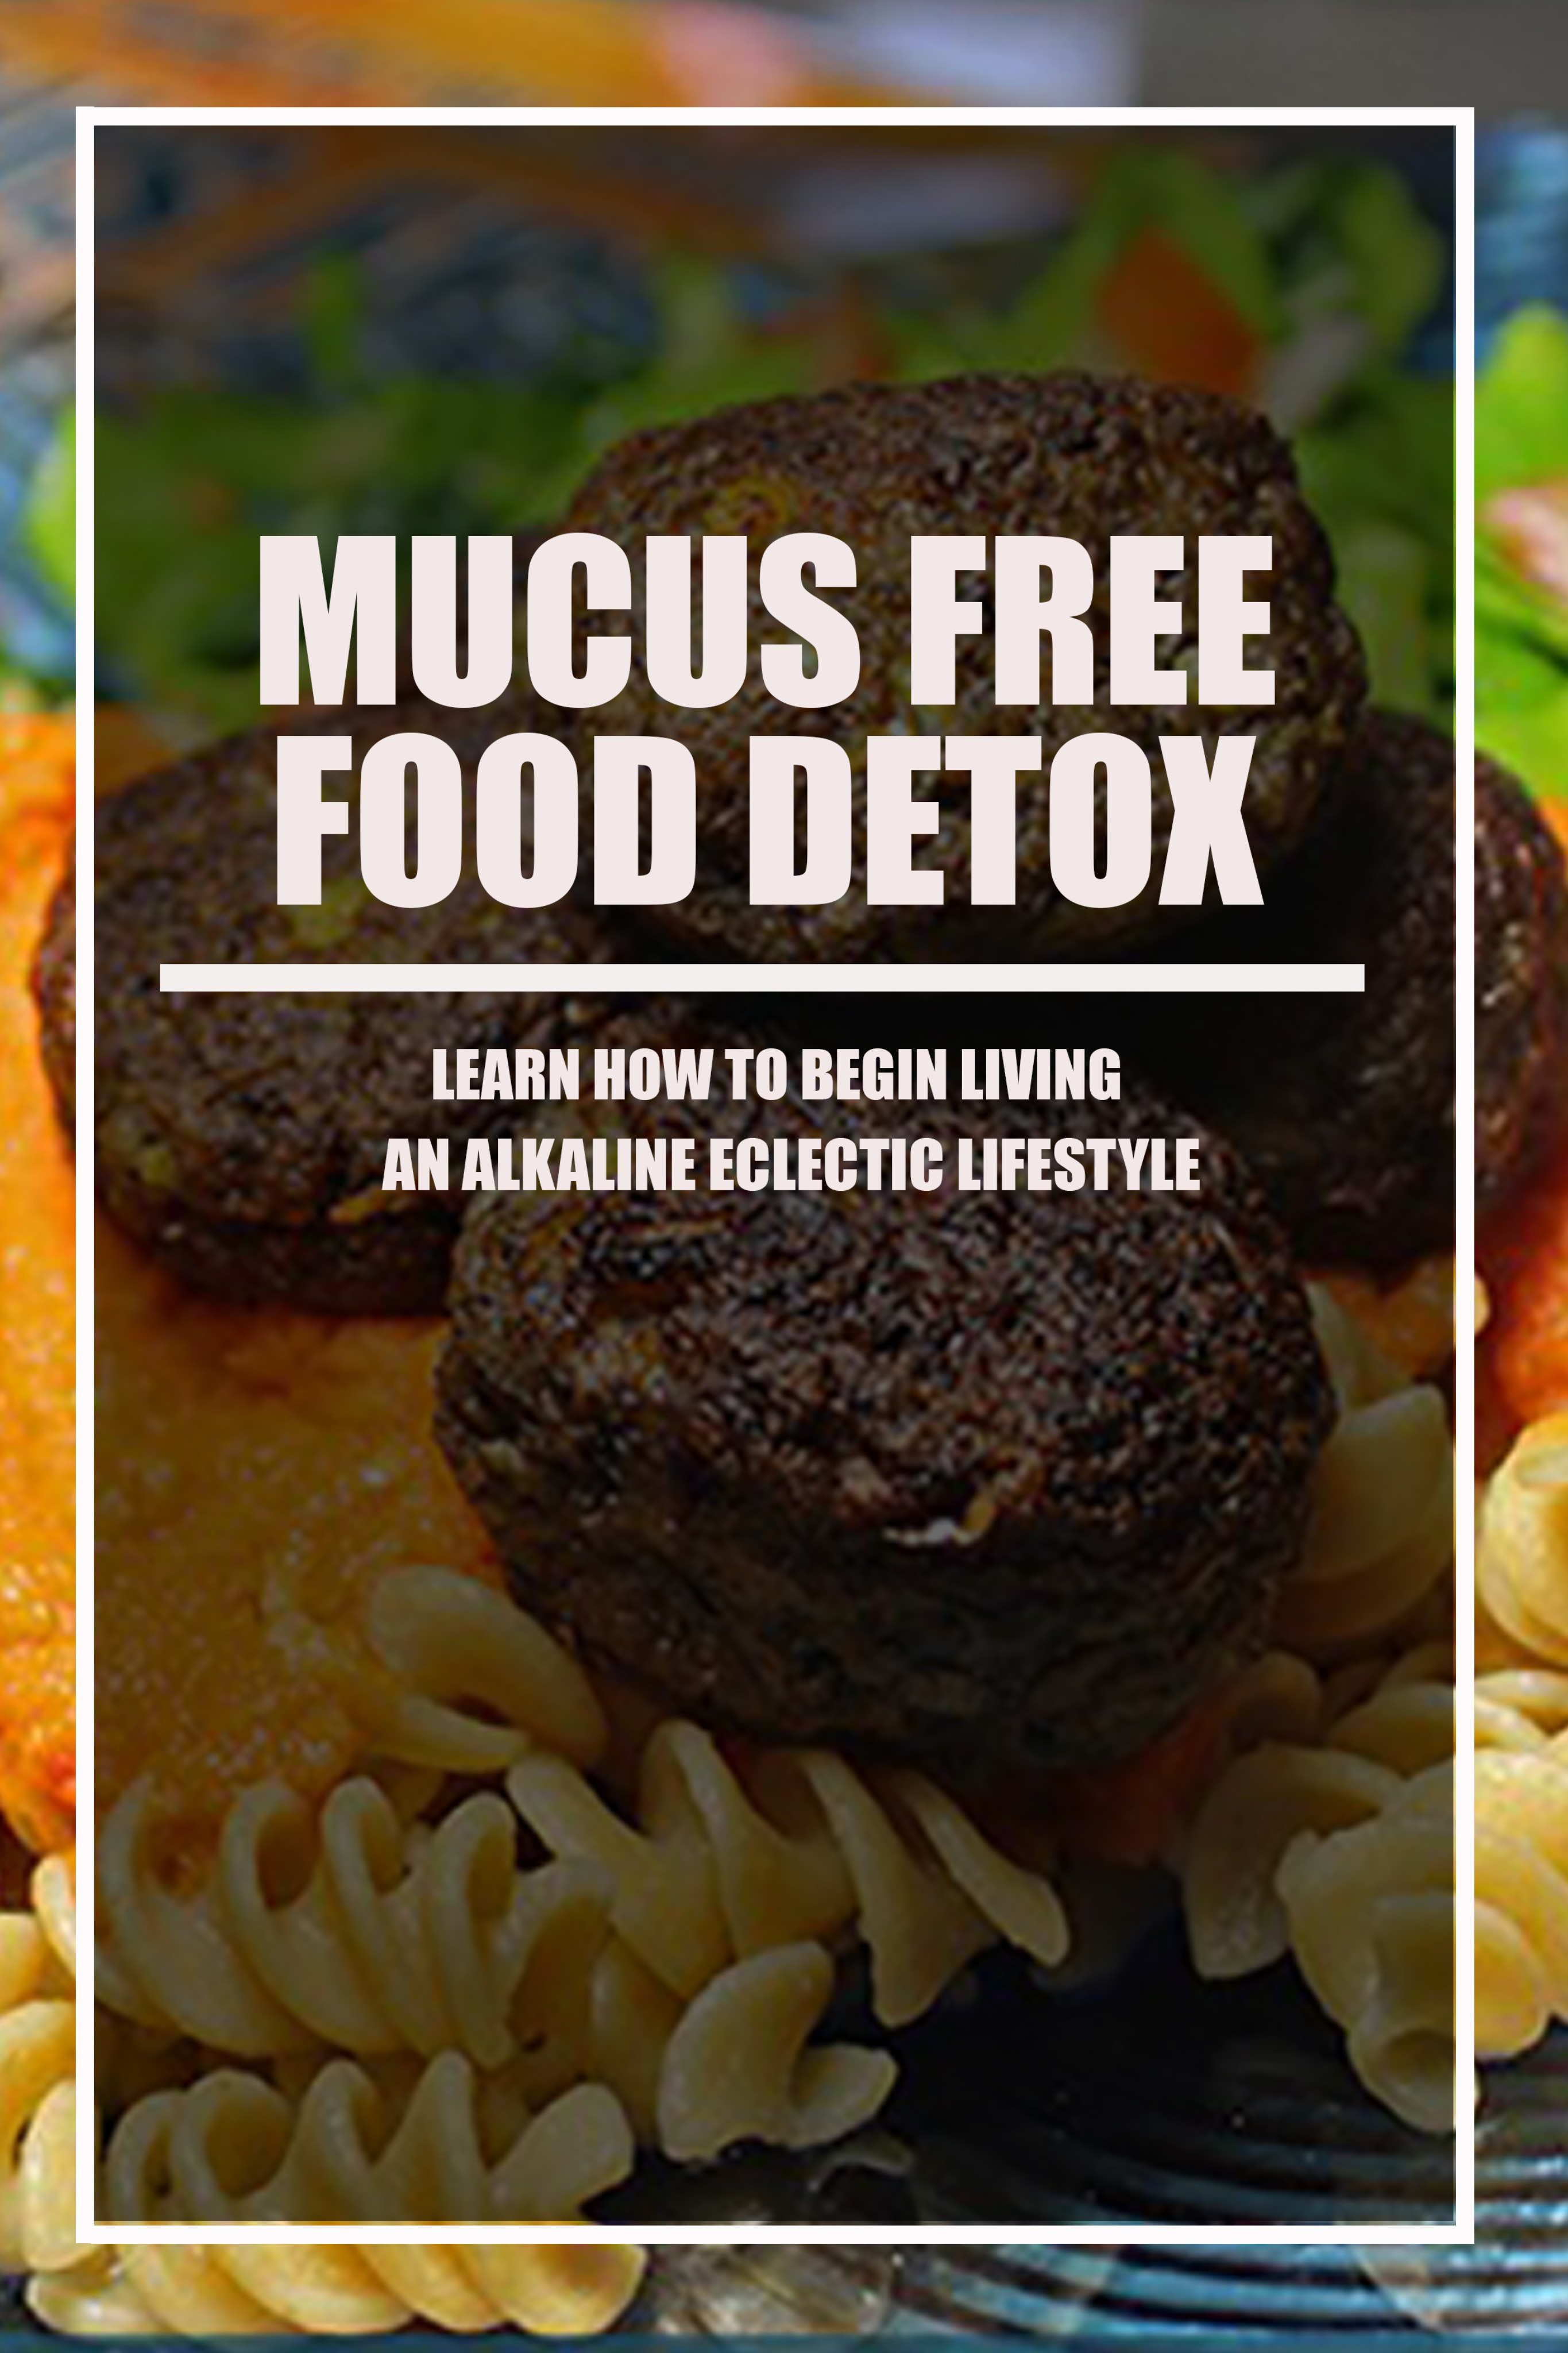 BEYOND VEGAN | MUCUS FREE FOOD DETOX GUIDE EBOOK